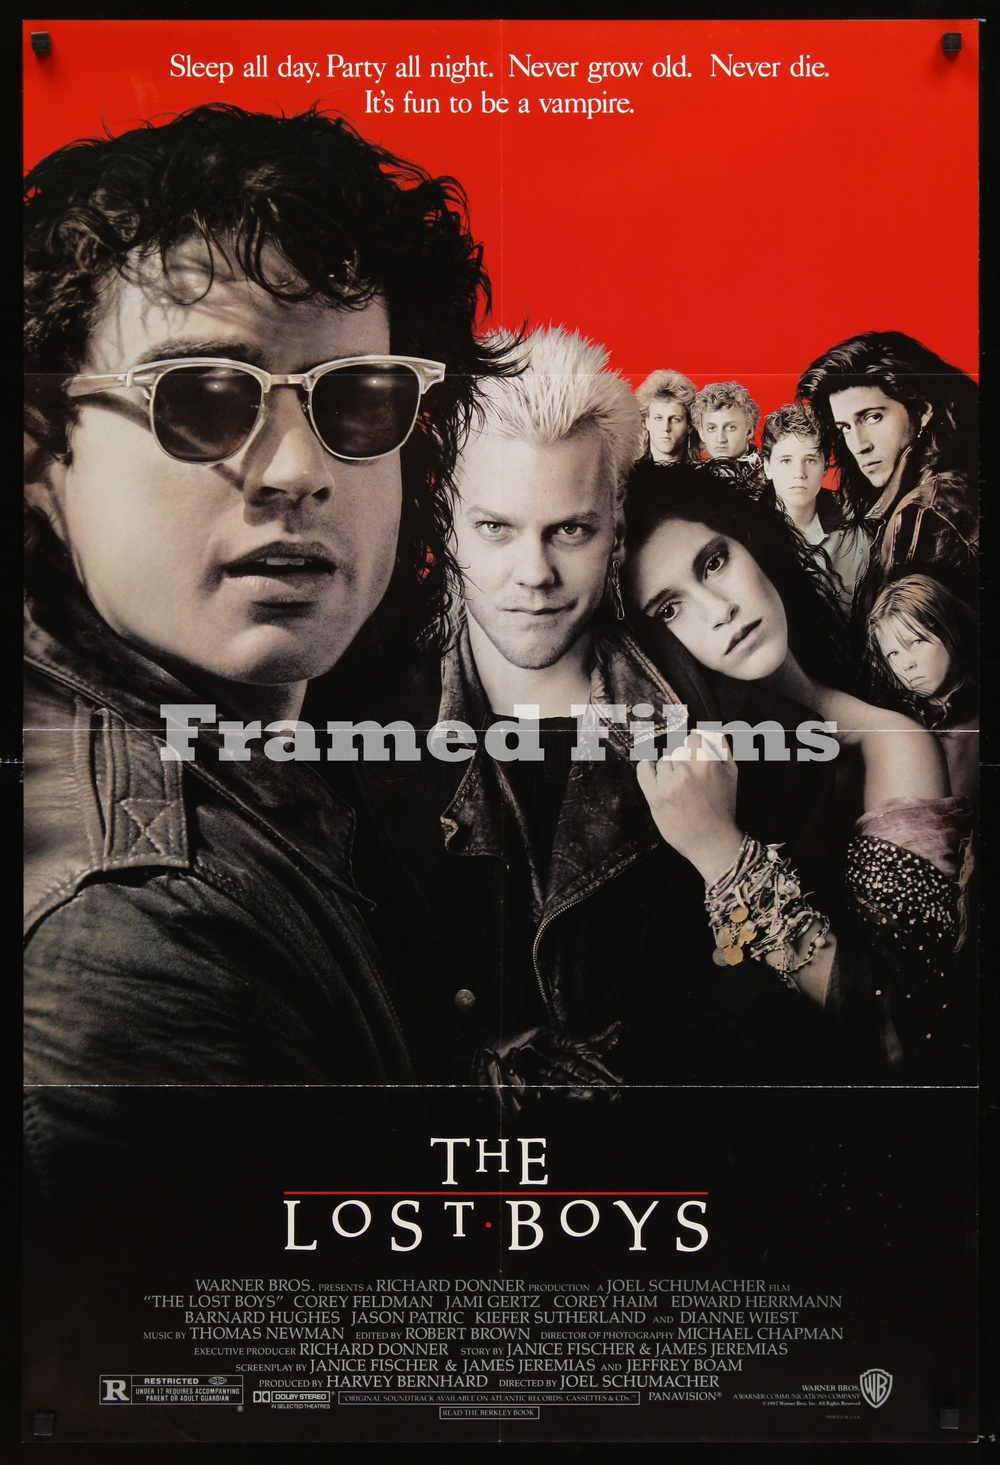 lost_boys_NZ03223_L.jpg